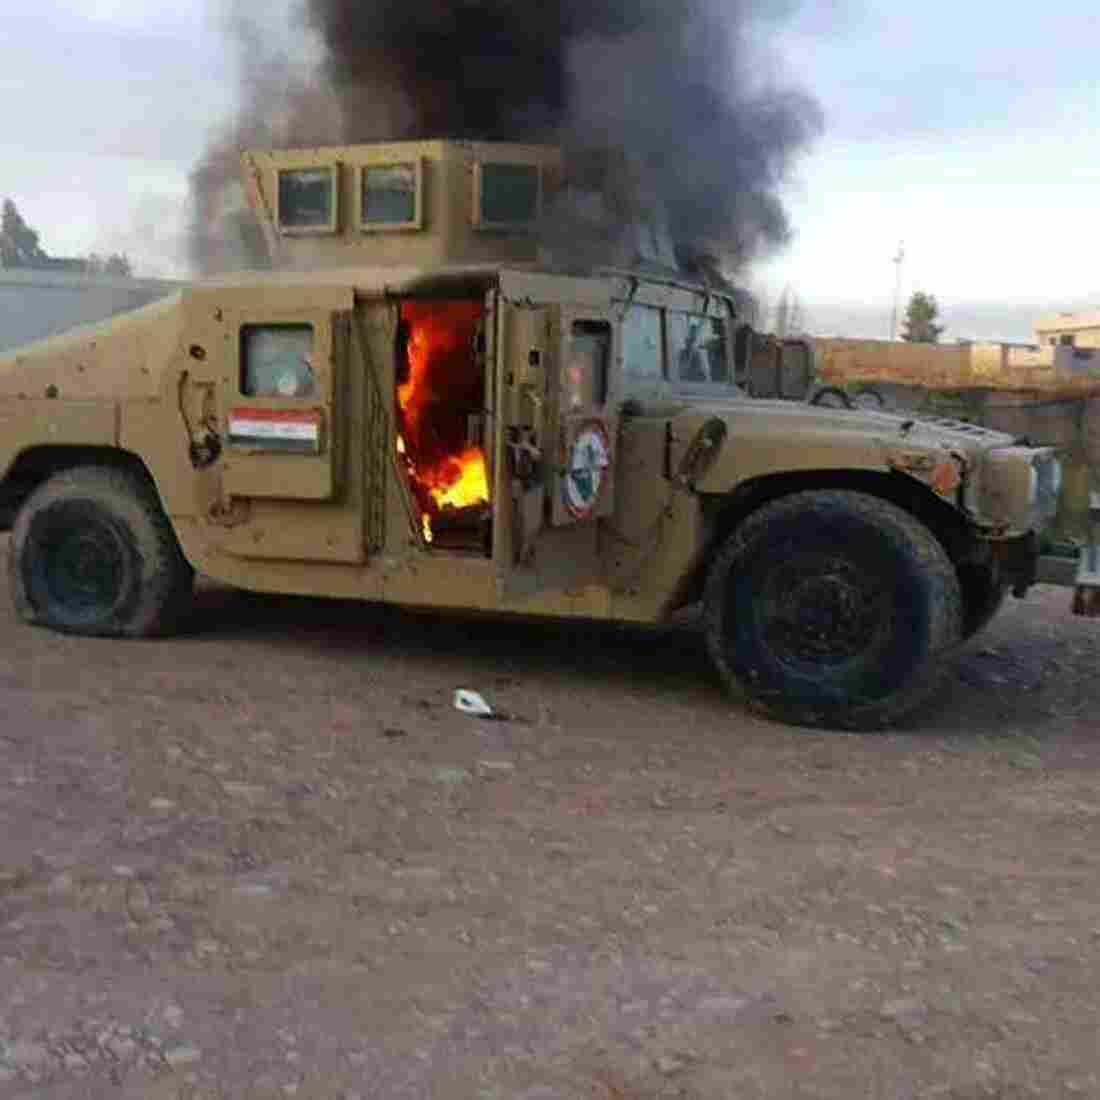 A cellphone photo shows an armored vehicle belonging to Iraqi security forces in flames Tuesday, after hundreds of militants launched a major assault in Mosul. Some 500,000 Iraqis have fled their homes in the large city since militants took control.